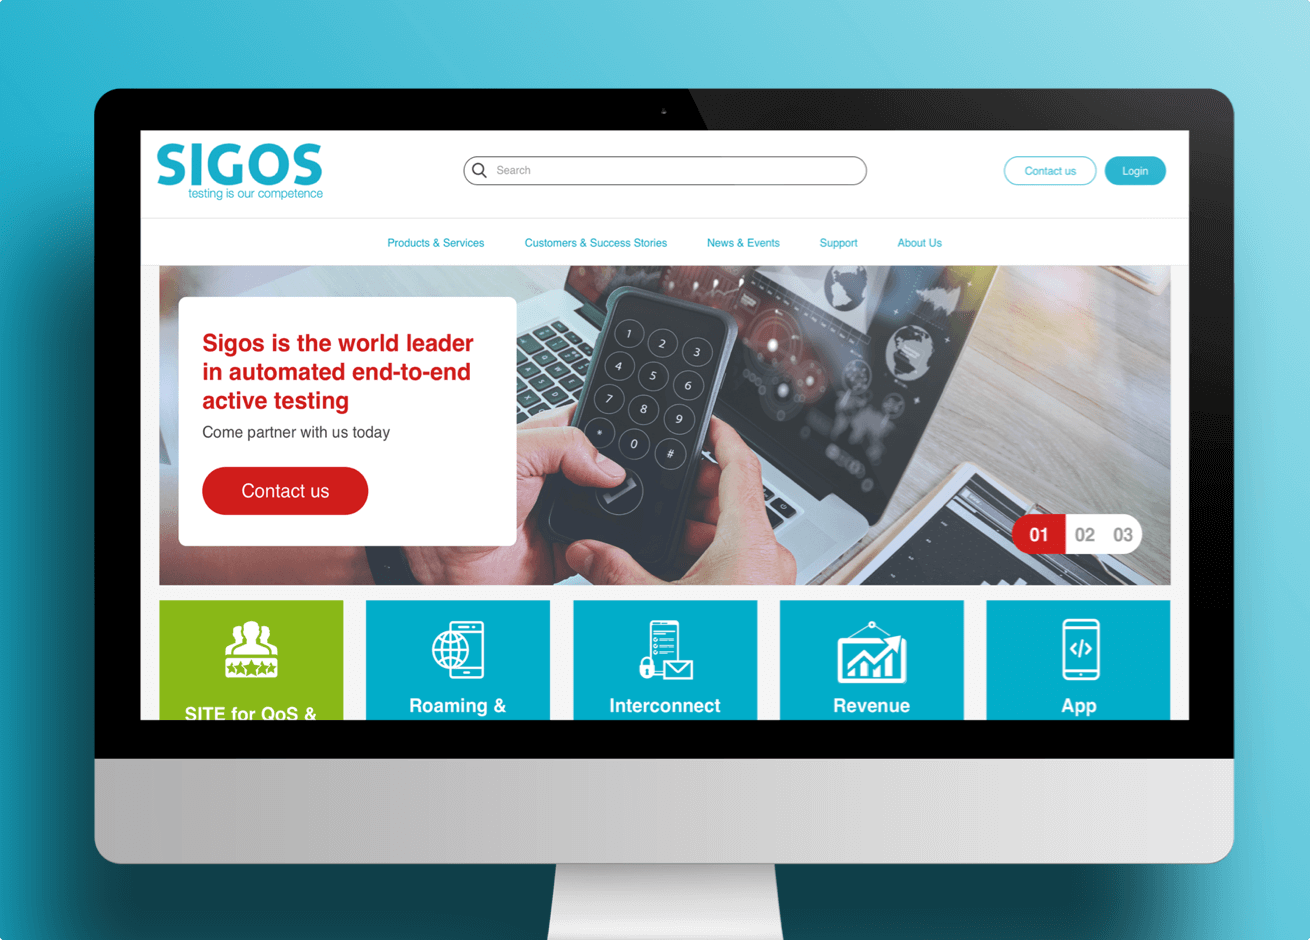 Sigos' website displayed on a desktop